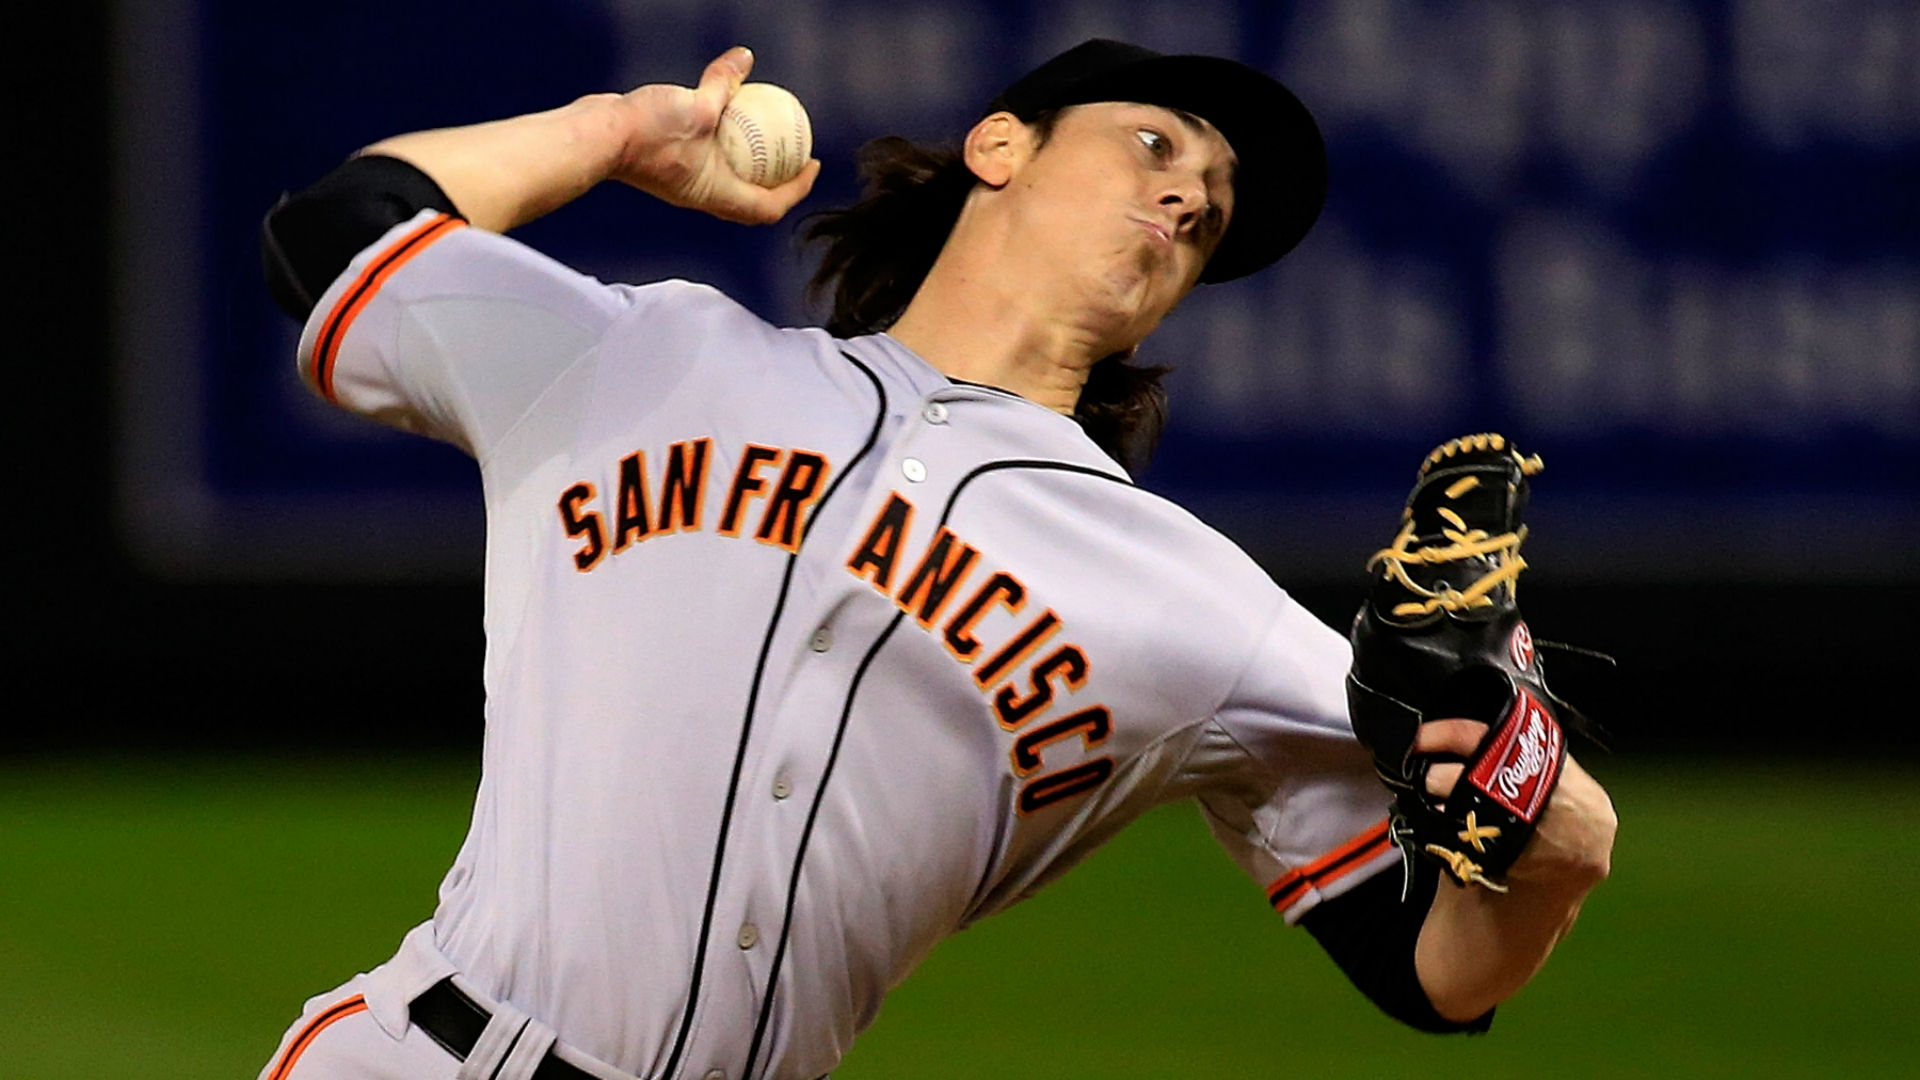 Lincecum-Tim-021815-USNews-Getty-FTR